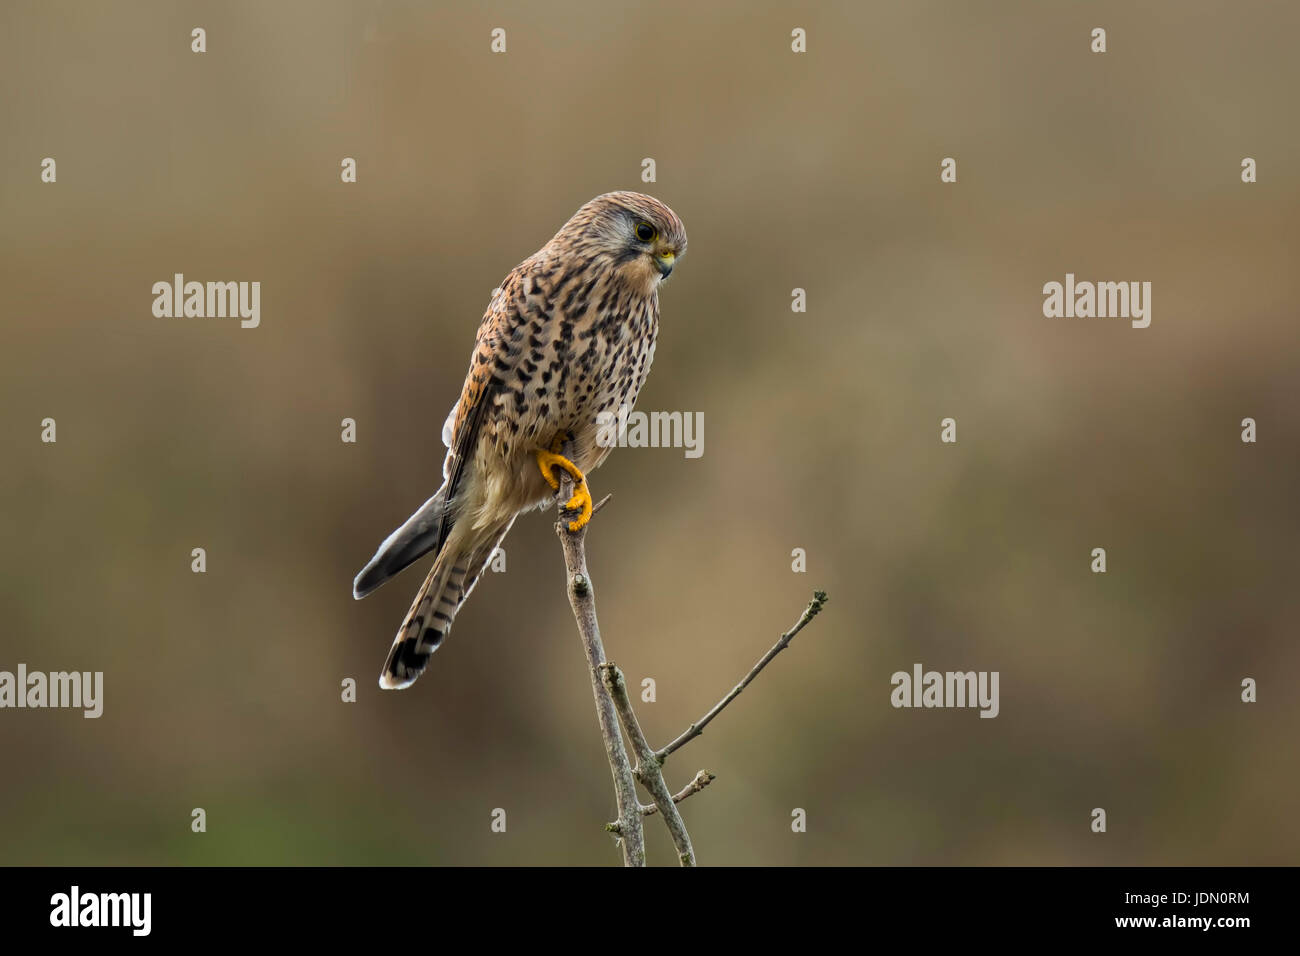 Common Kestrel (falco tinnunculus) perched on a tree top. Watching, observating, searching and hunting. - Stock Image